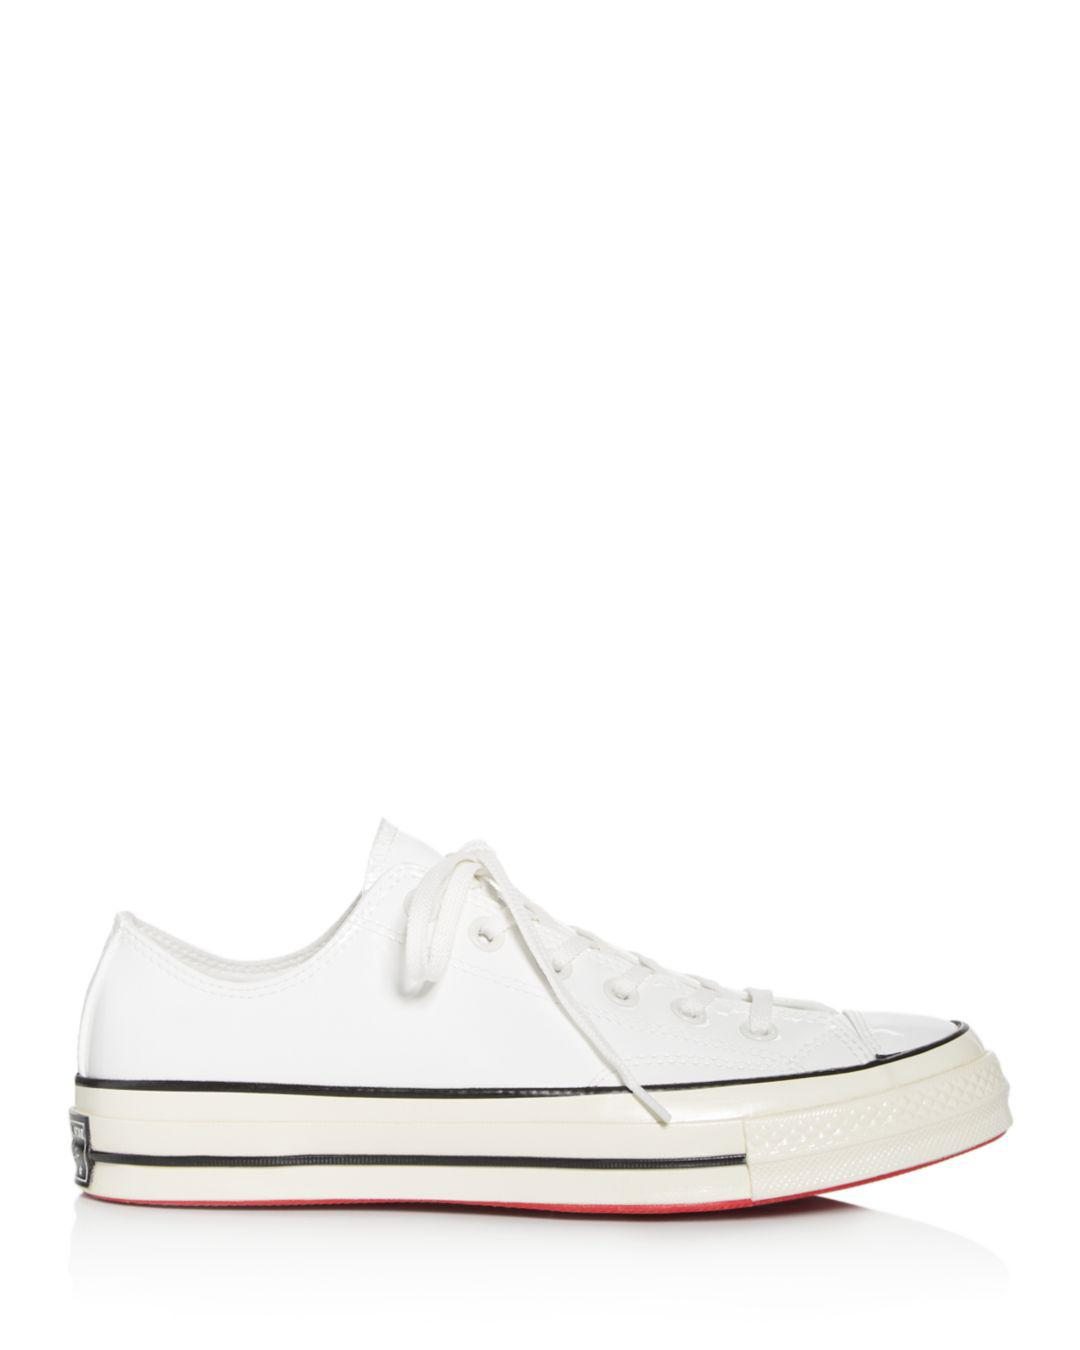 ea26eeeccca4de Converse Women s Chuck Taylor All Star Lace-up Sneakers in White - Lyst